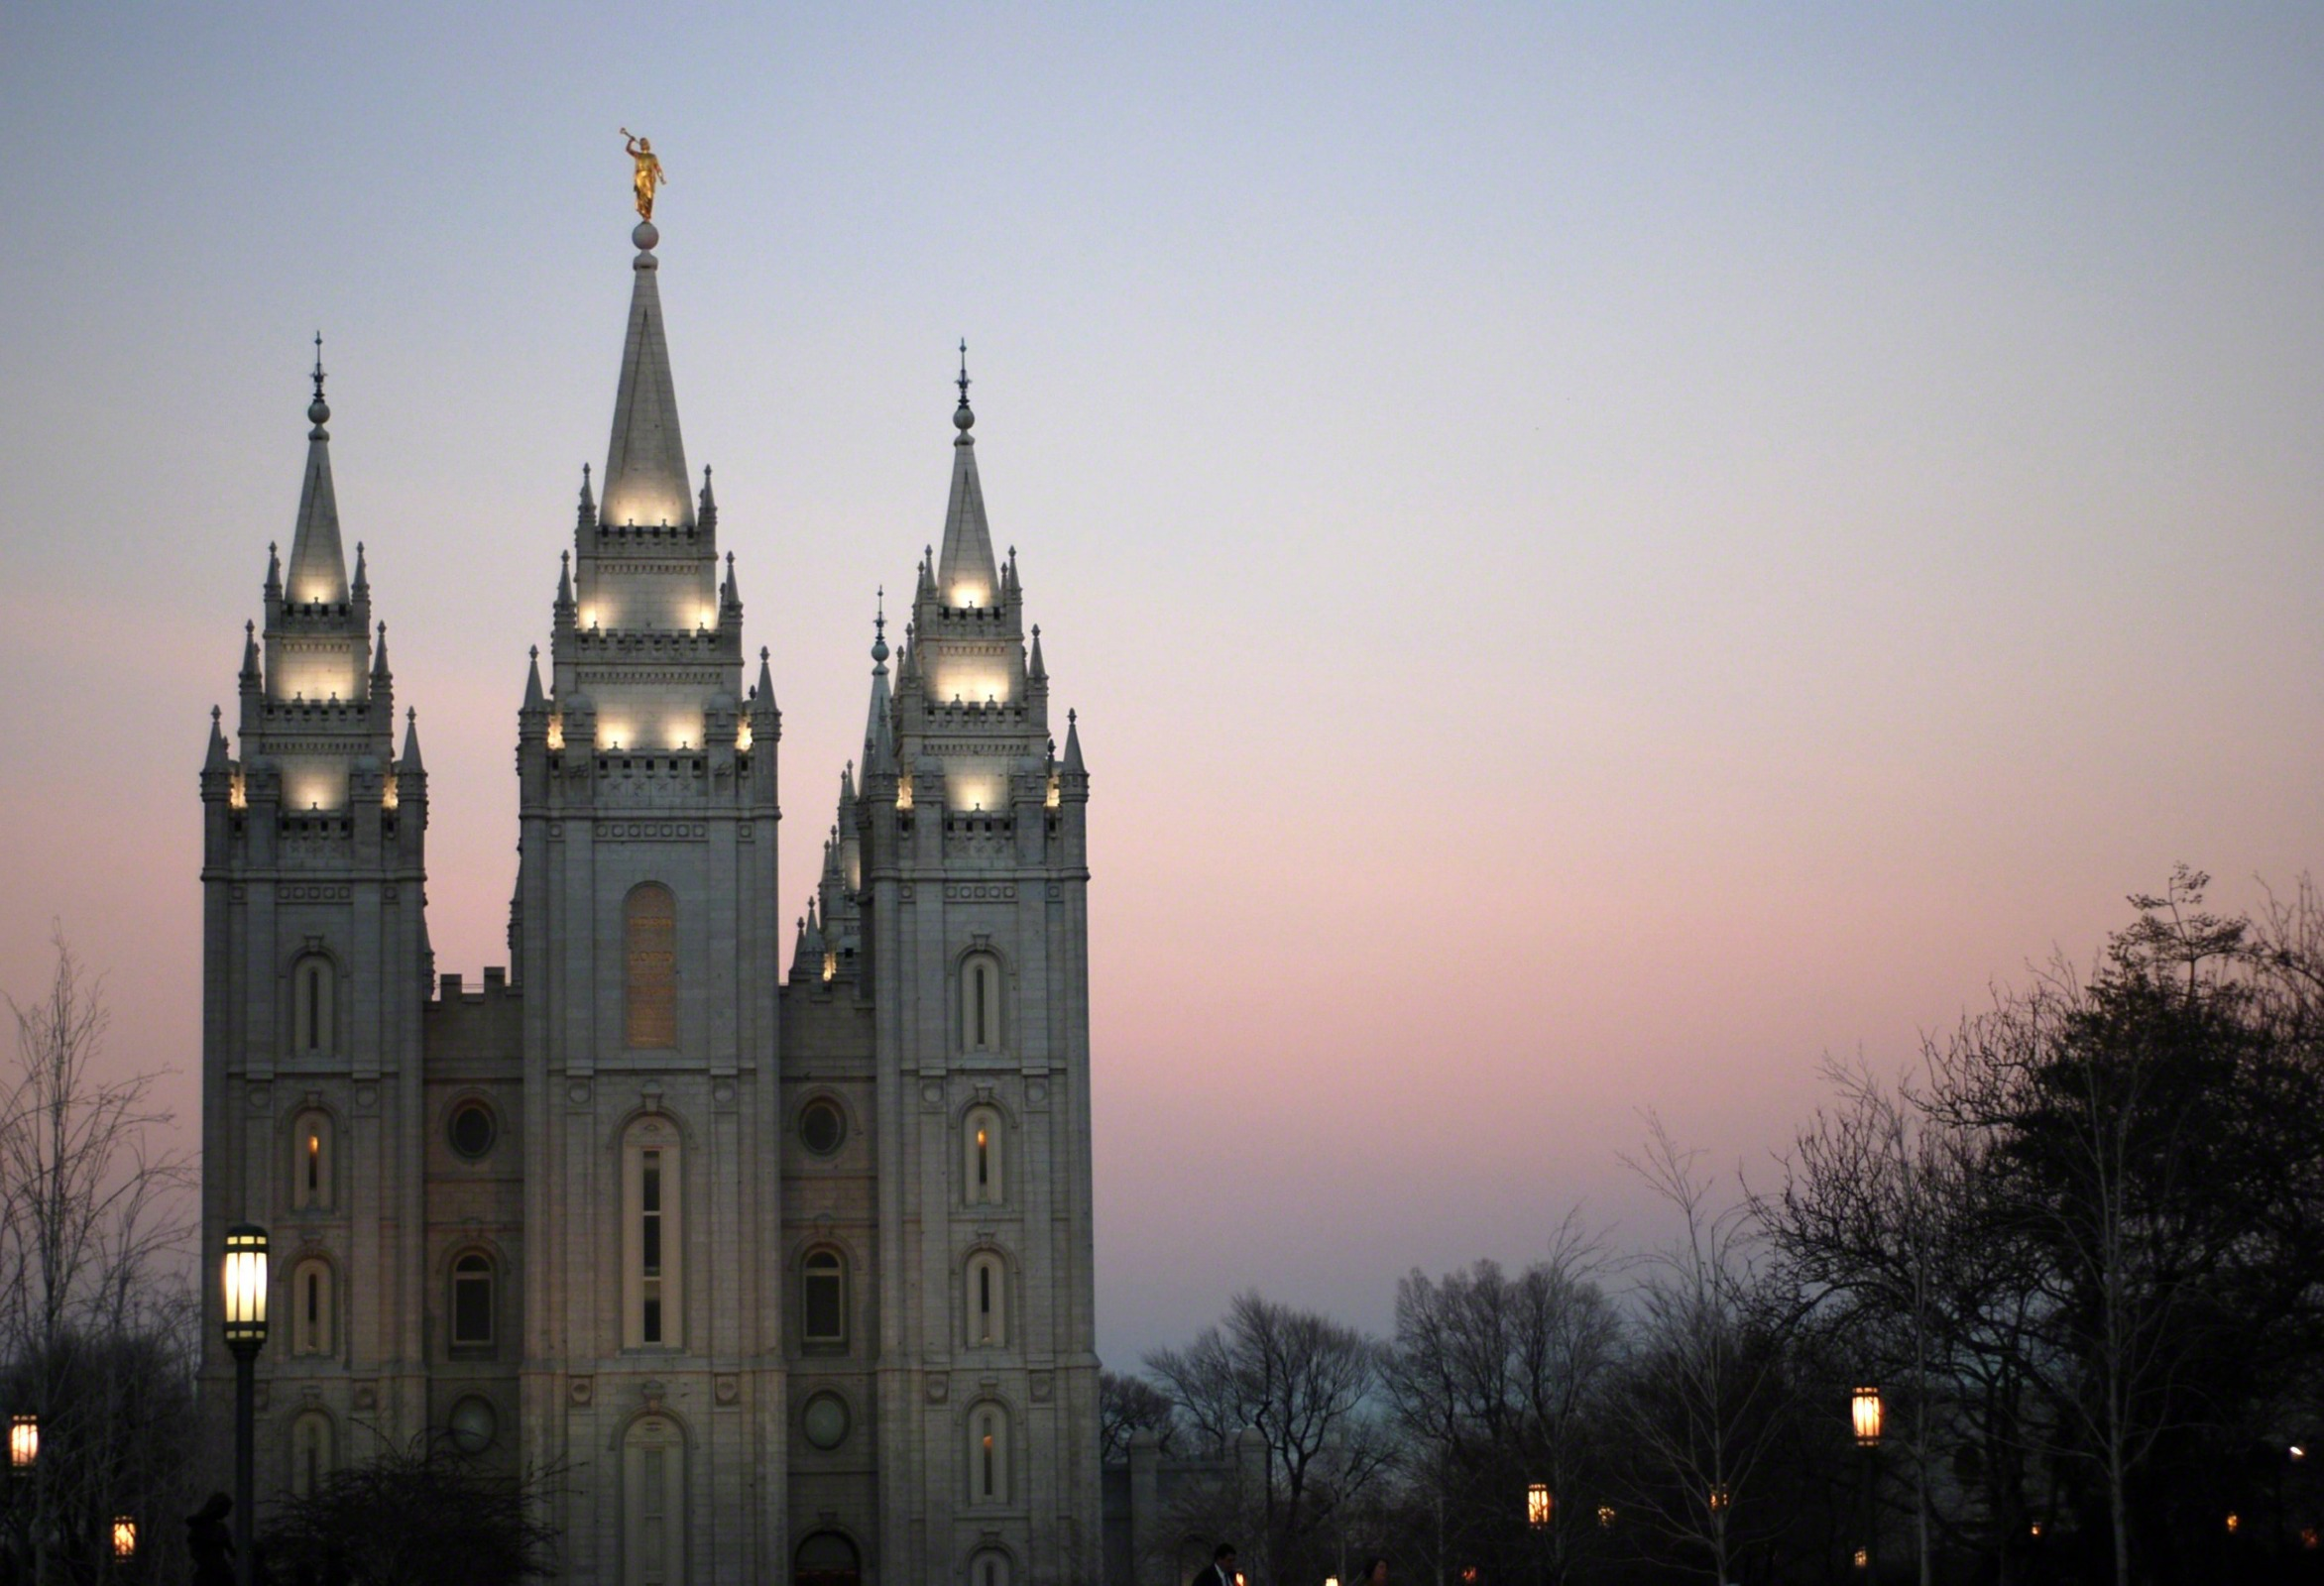 Salt lake temple in the evening - Lds temple wallpaper ...